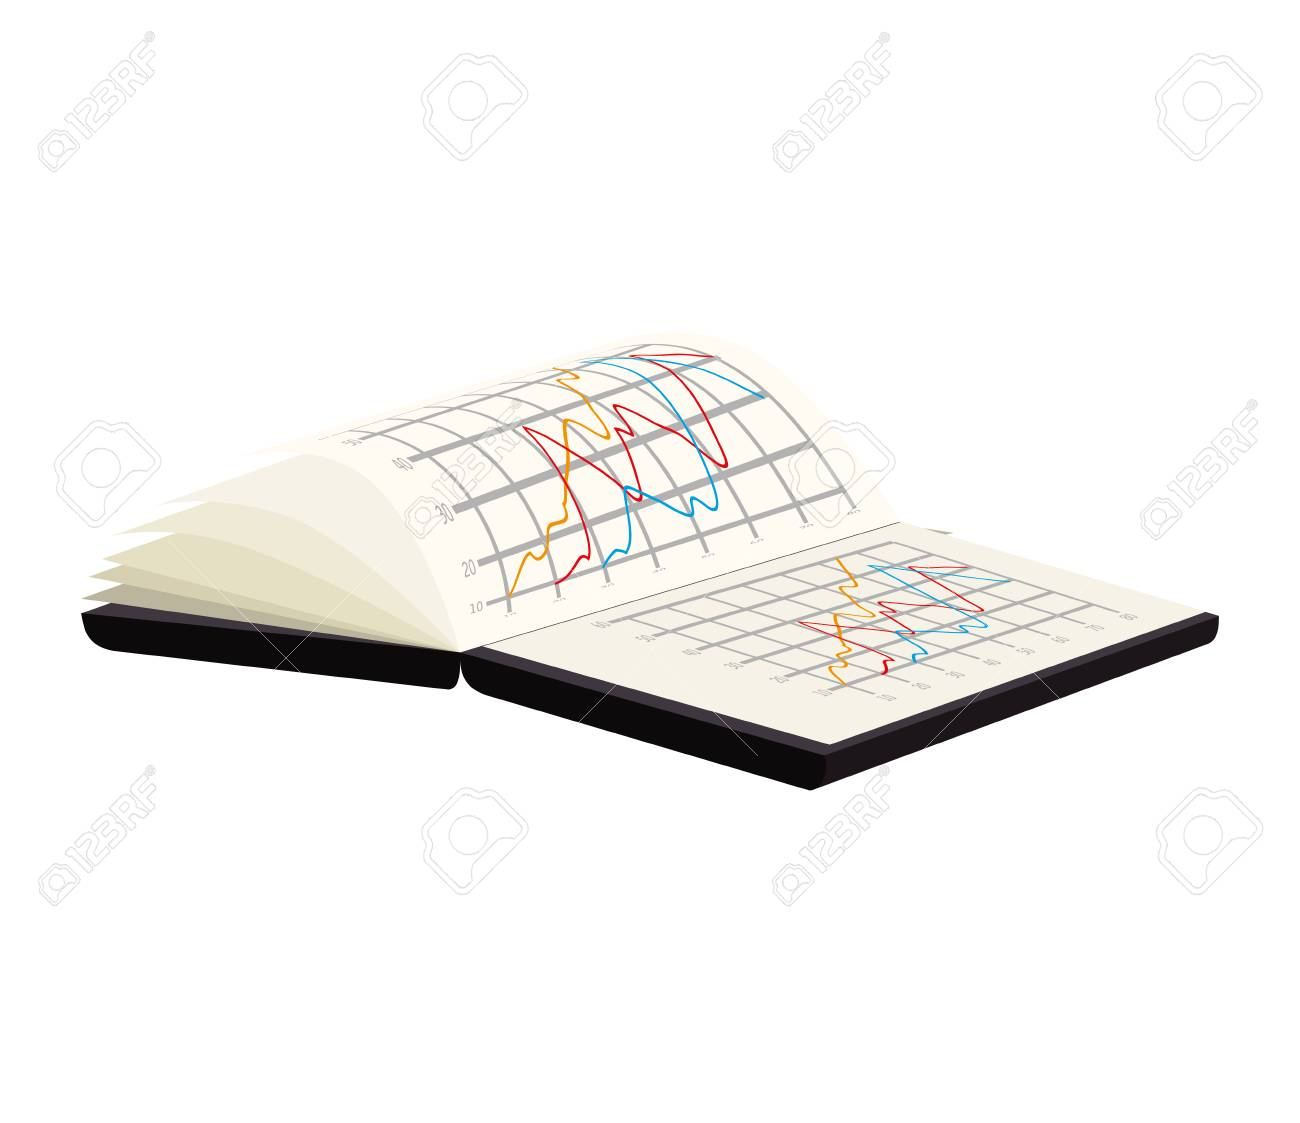 Spreadsheet Notebook Pertaining To Spreadsheet Book Notebook Analysis Chart Data Vector Illustration